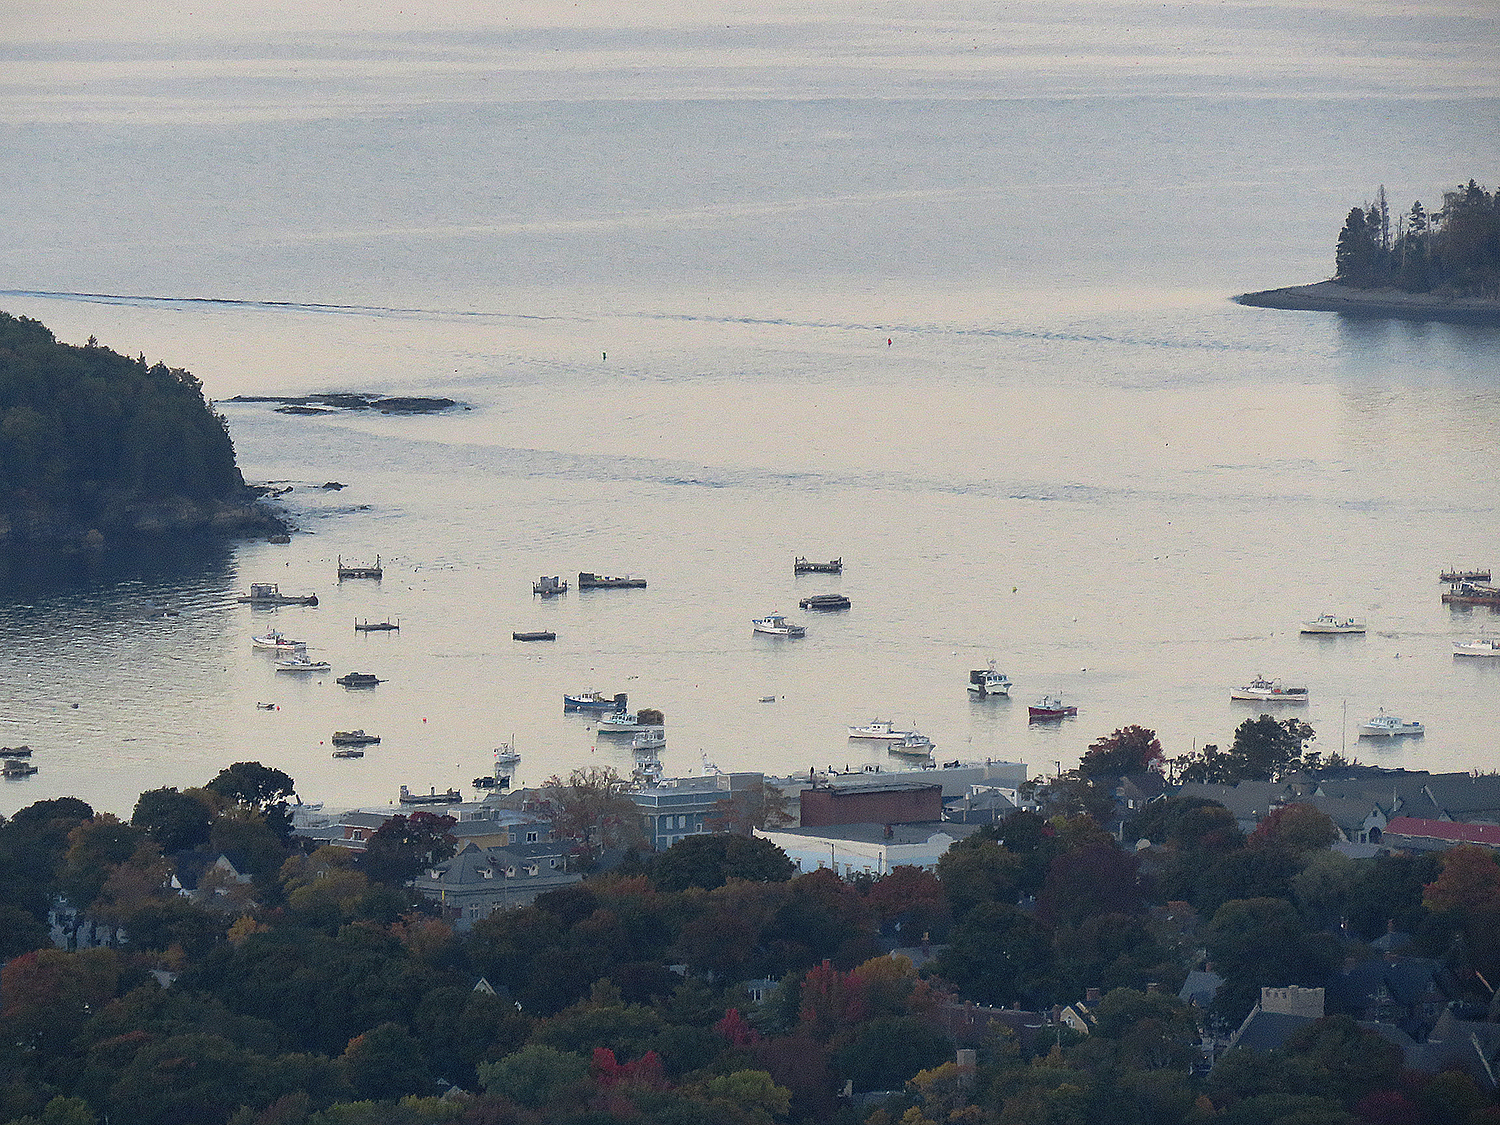 Bar Harbor, Maine. Foto: Erik Bergin